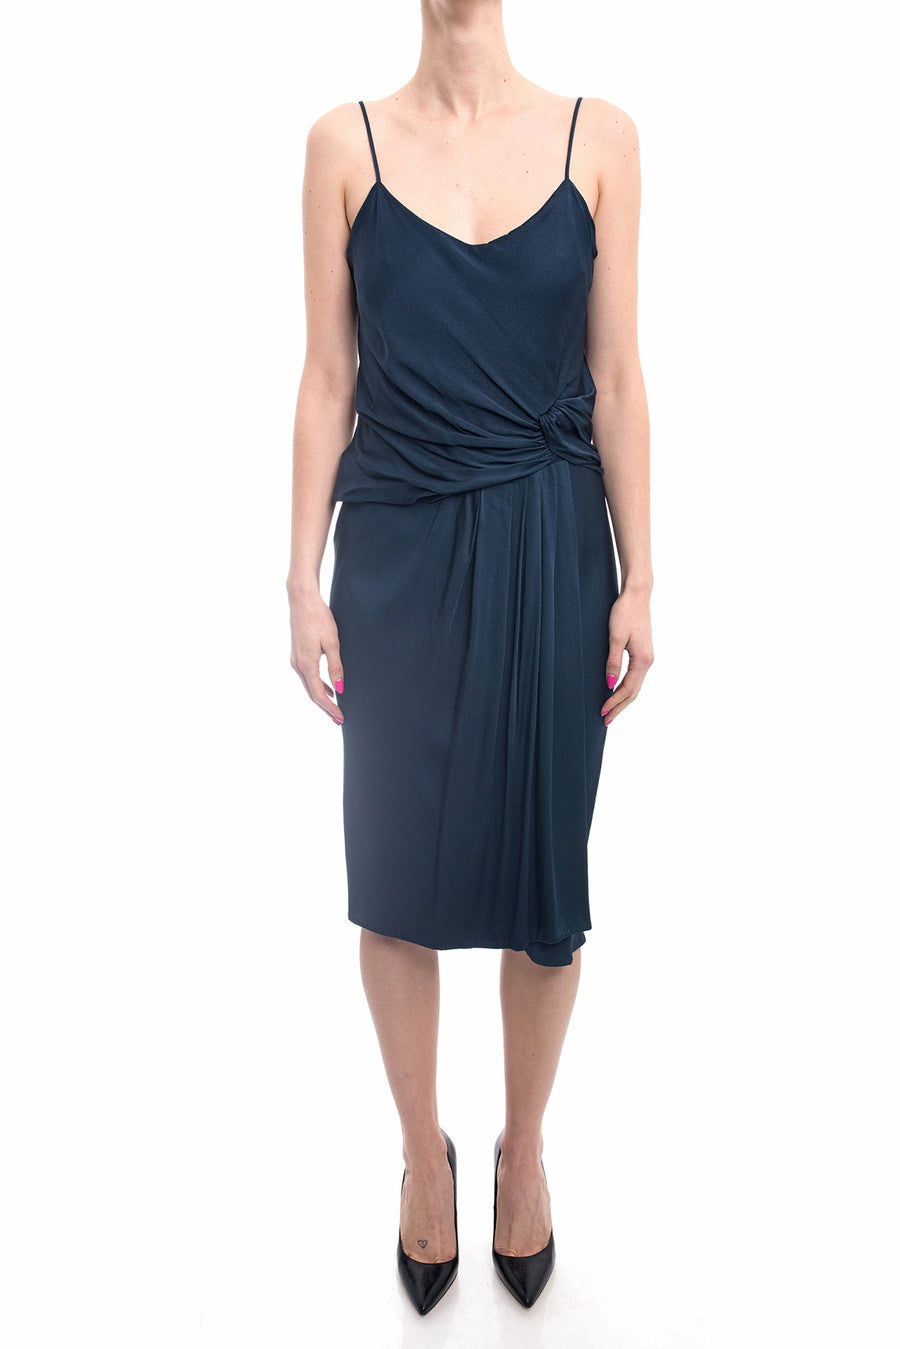 Jason Wu Dark Steel Blue Strappy Jersey Dress - 6